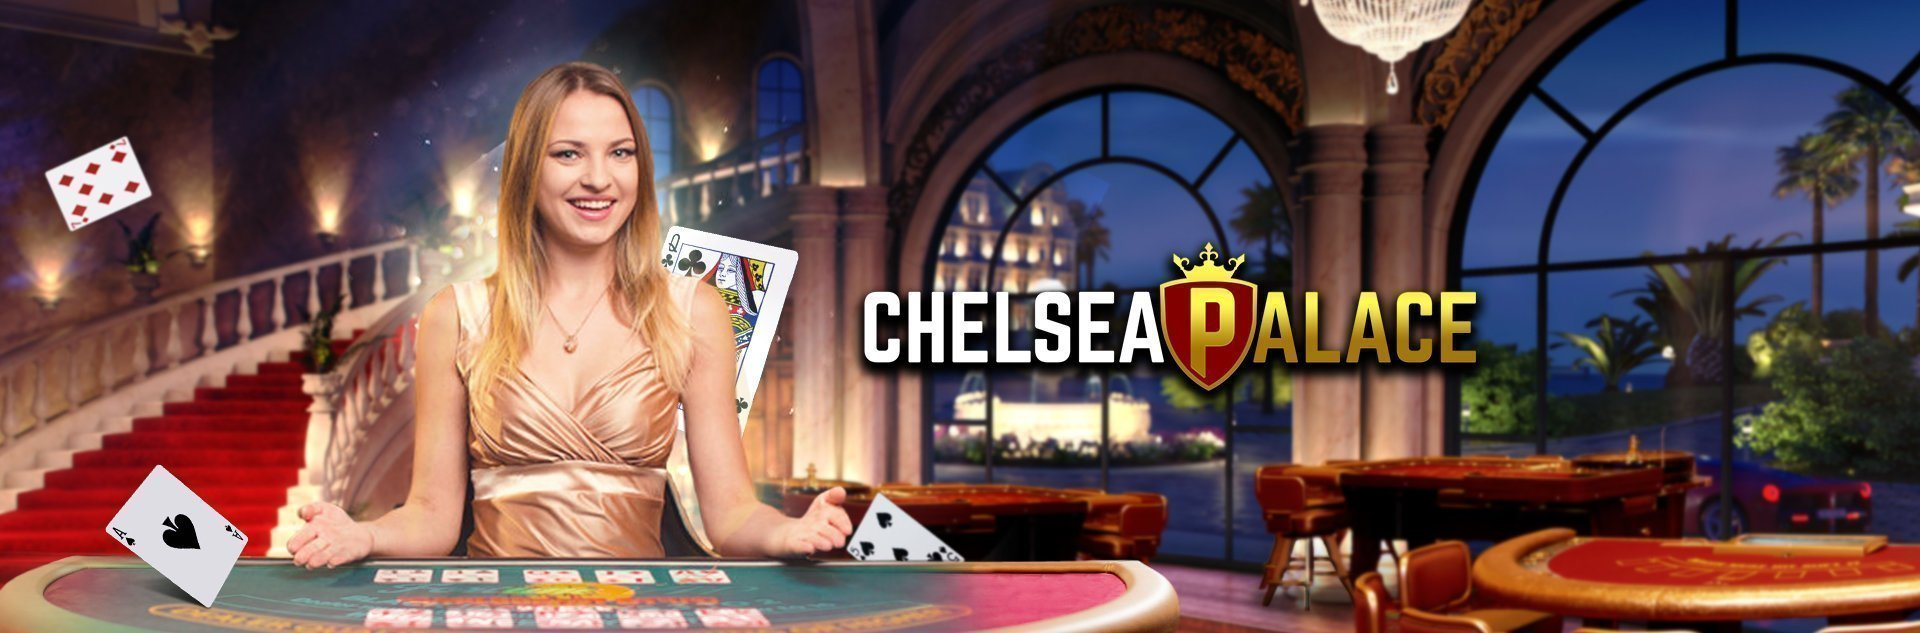 Chelsea Palace casino review UK